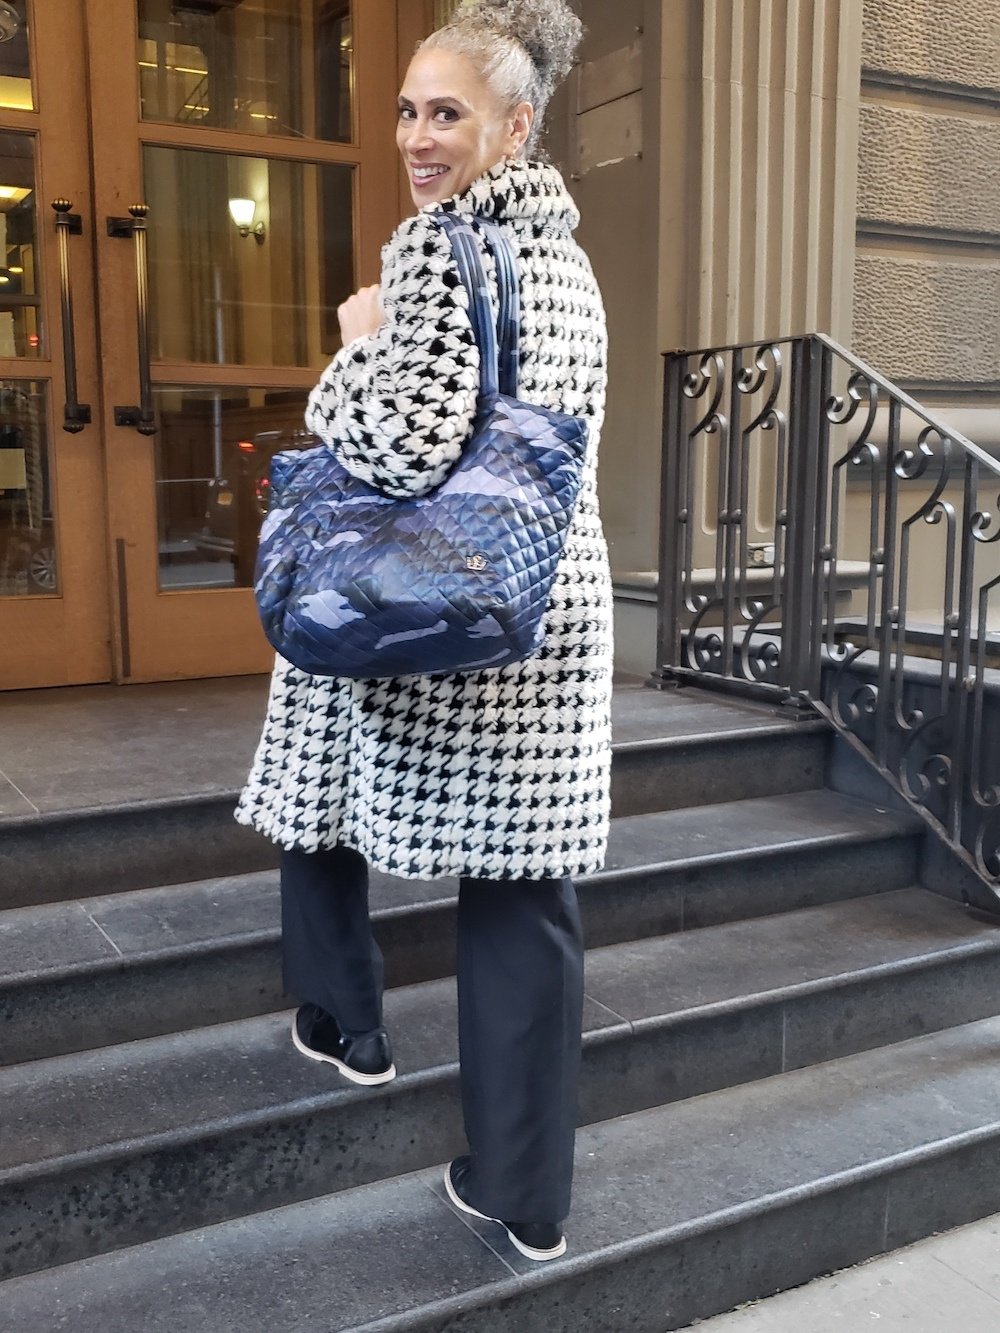 Woman walking up the steps of a building, wearing a black and white houndstooth faux fur coat, and looking back at the camera.